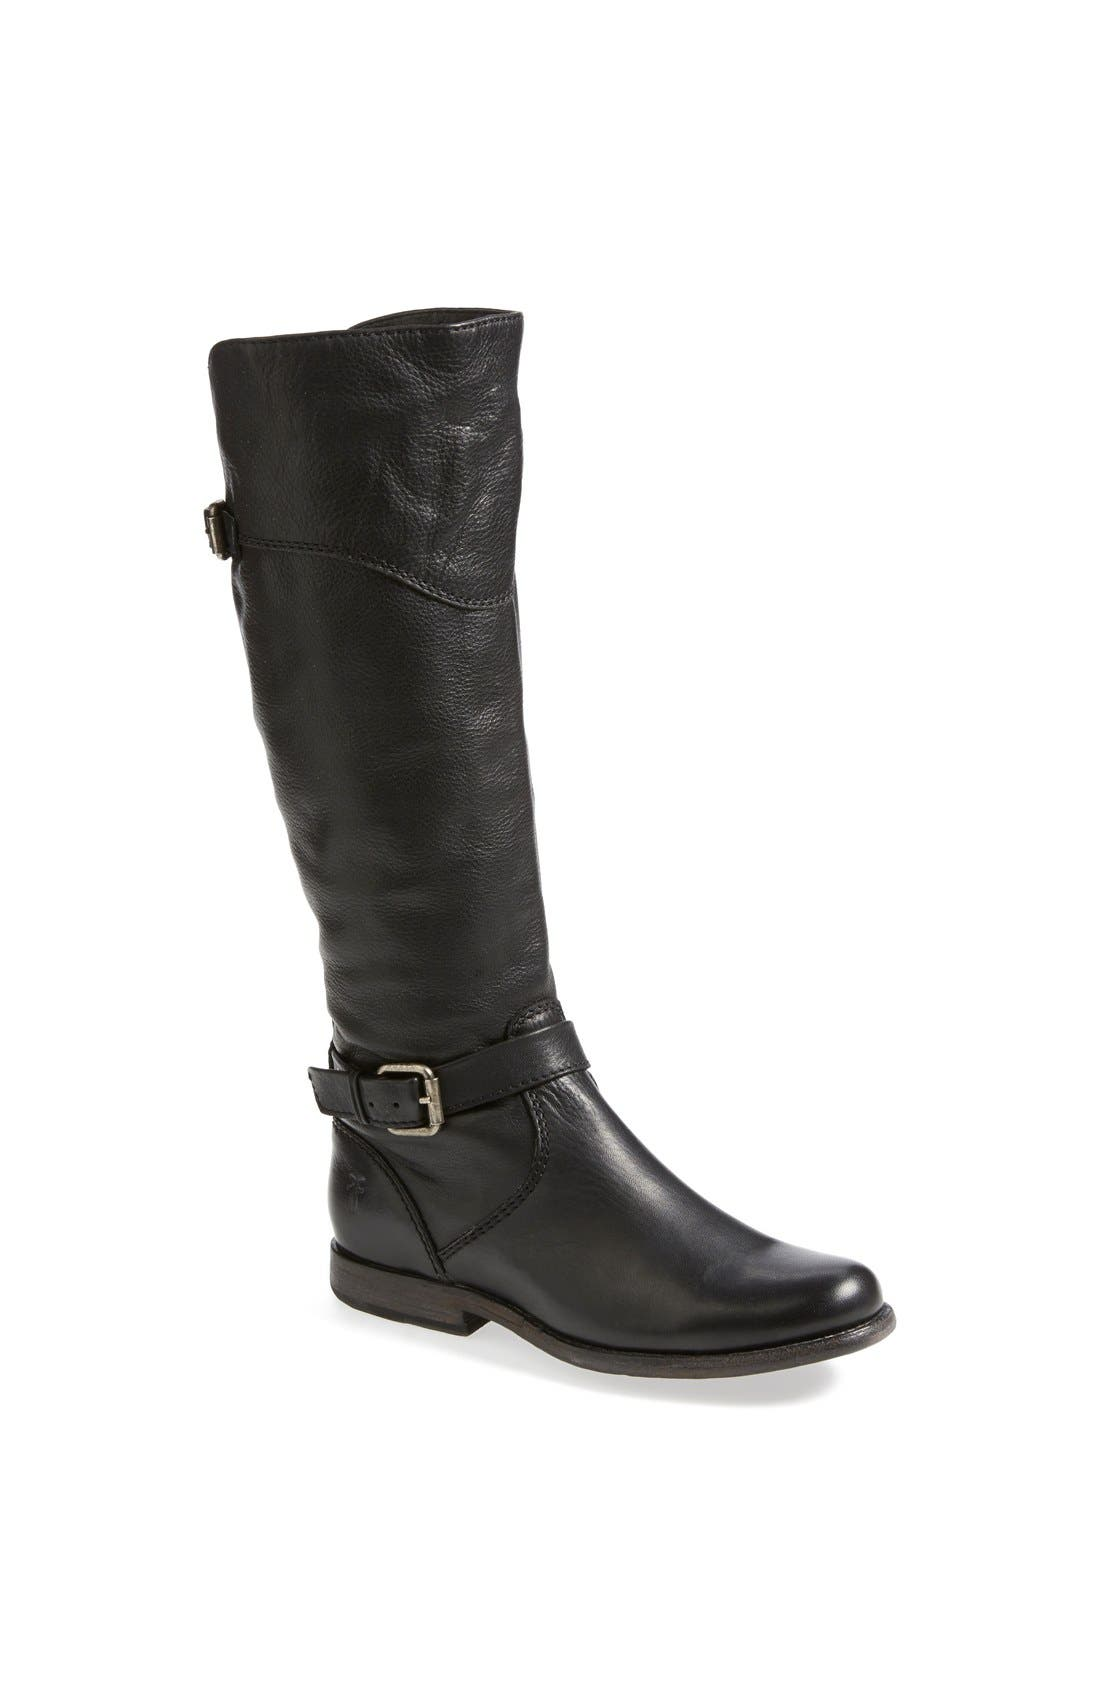 Main Image - Frye 'Phillip' Riding Boot (Extended Calf) (Women)